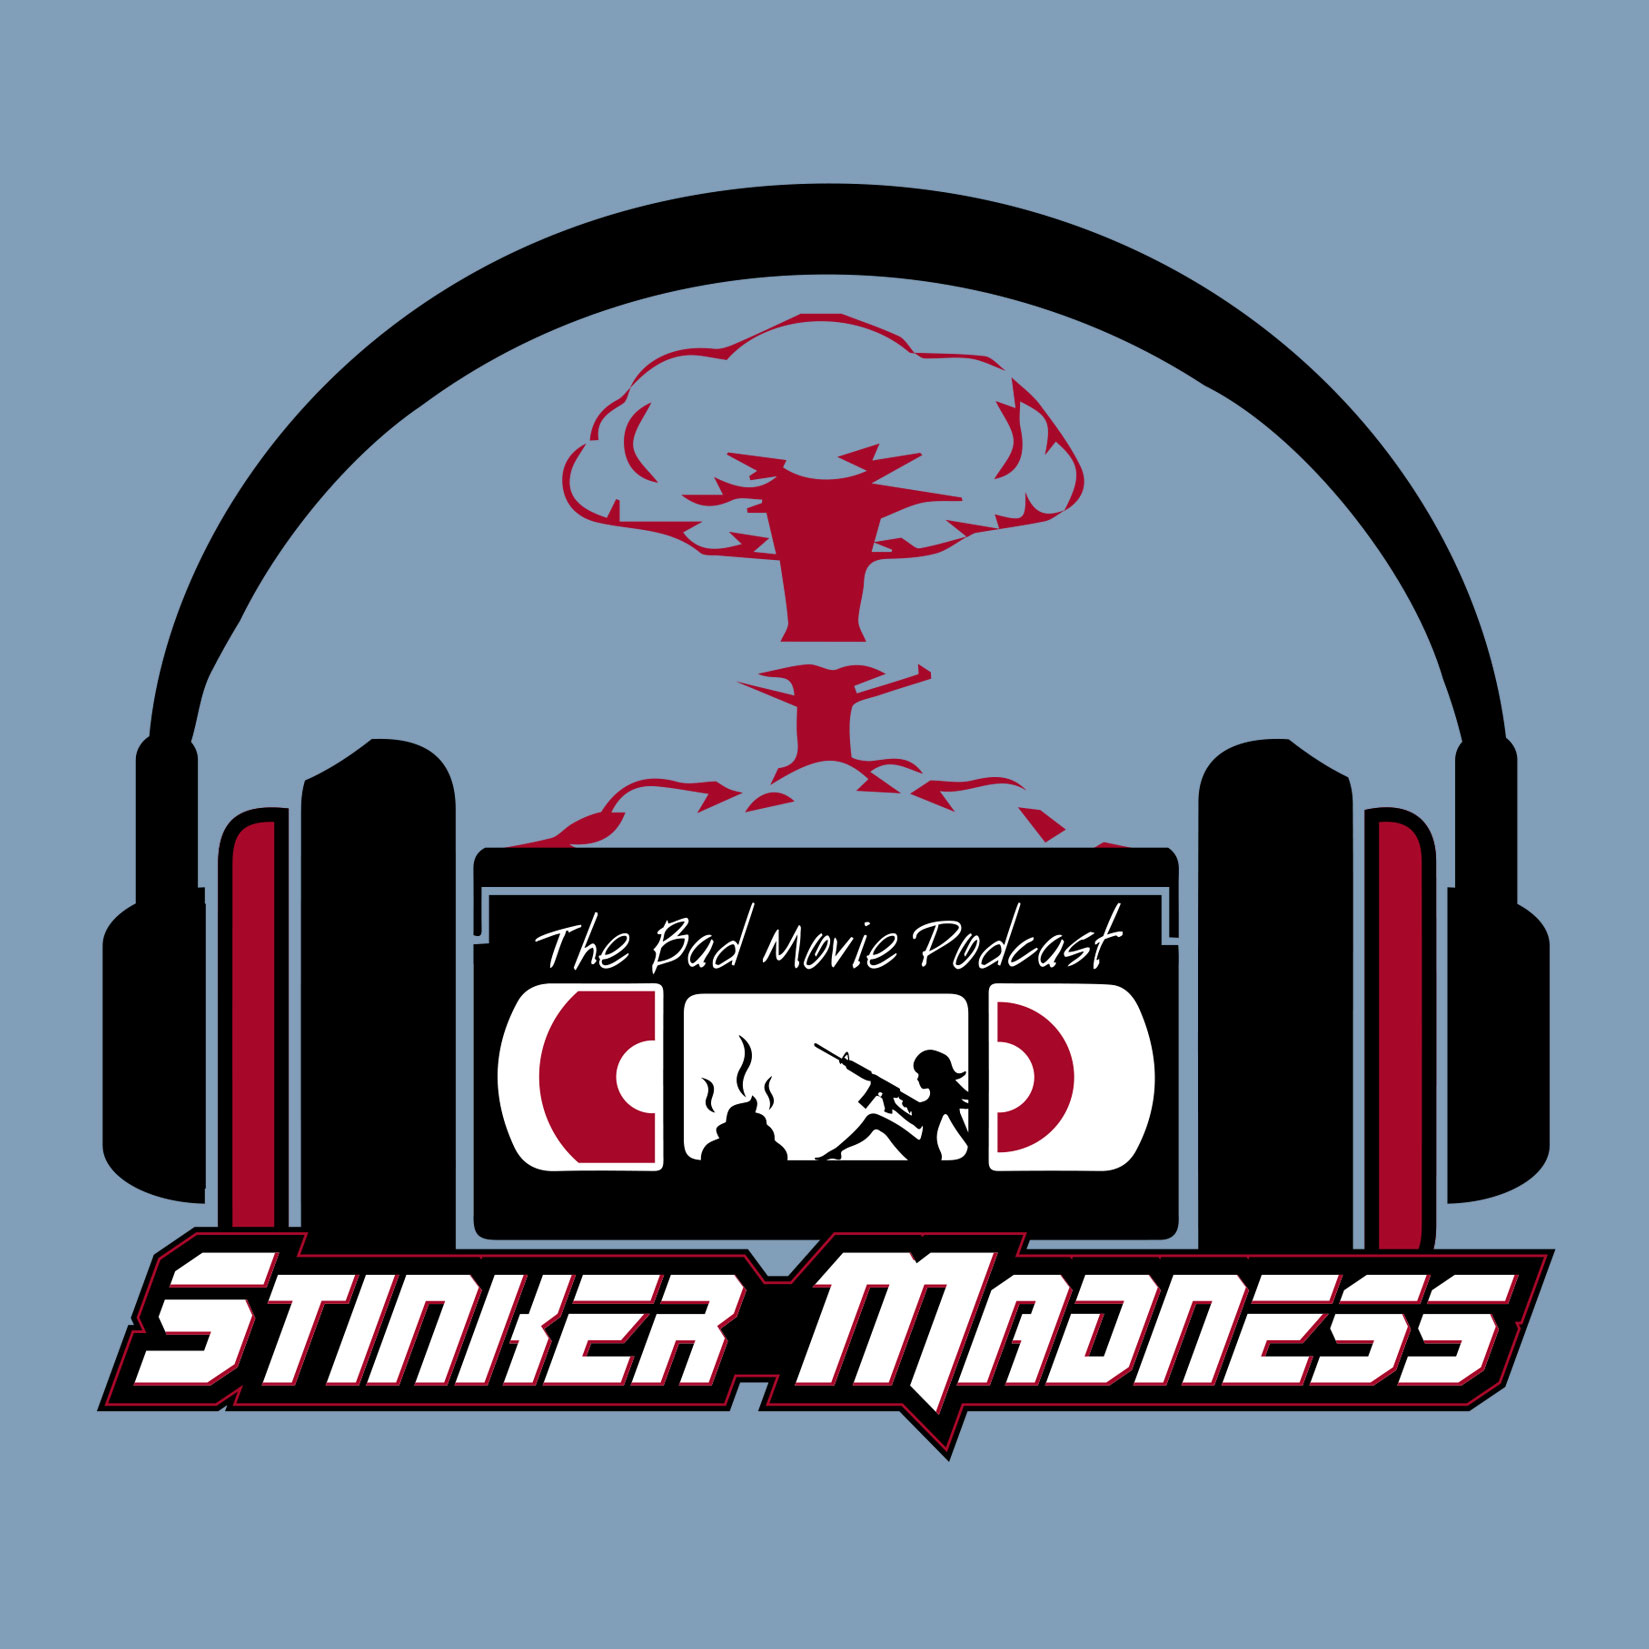 Stinker Madness - The Bad Movie Podcast